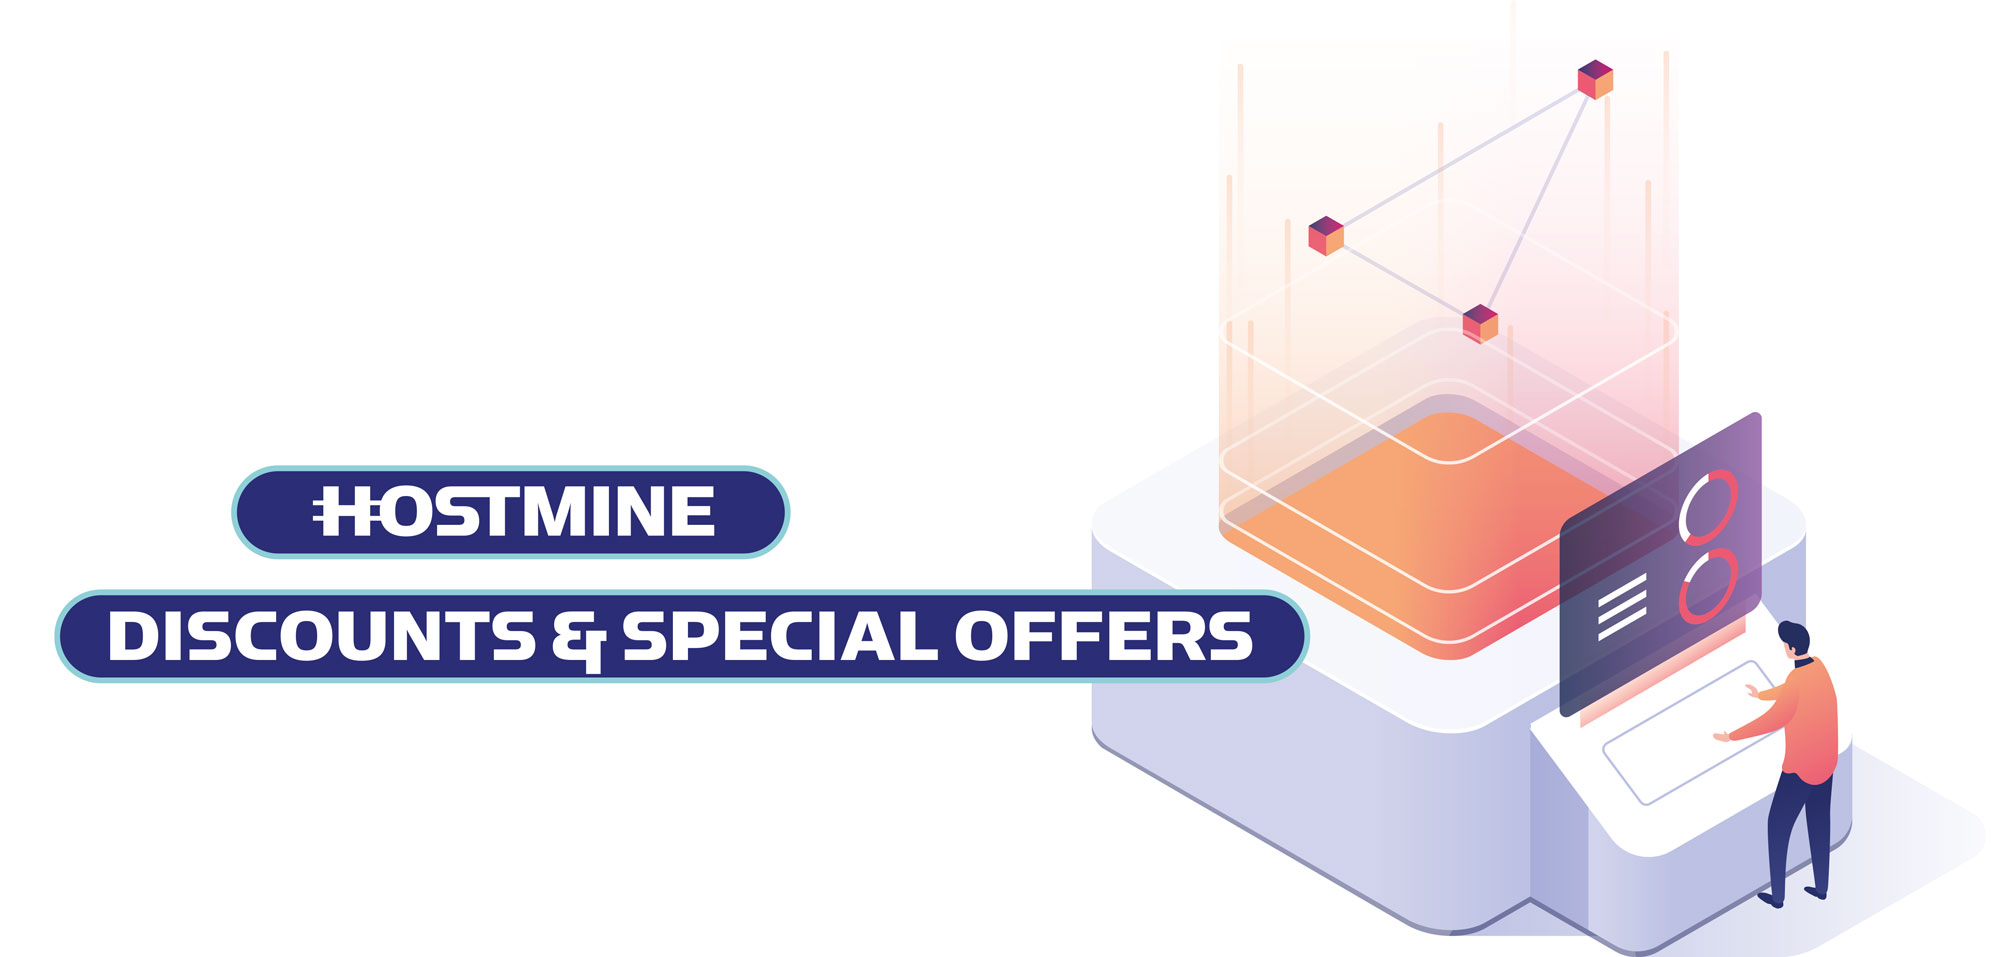 Hostmine Discounts and Special Offers